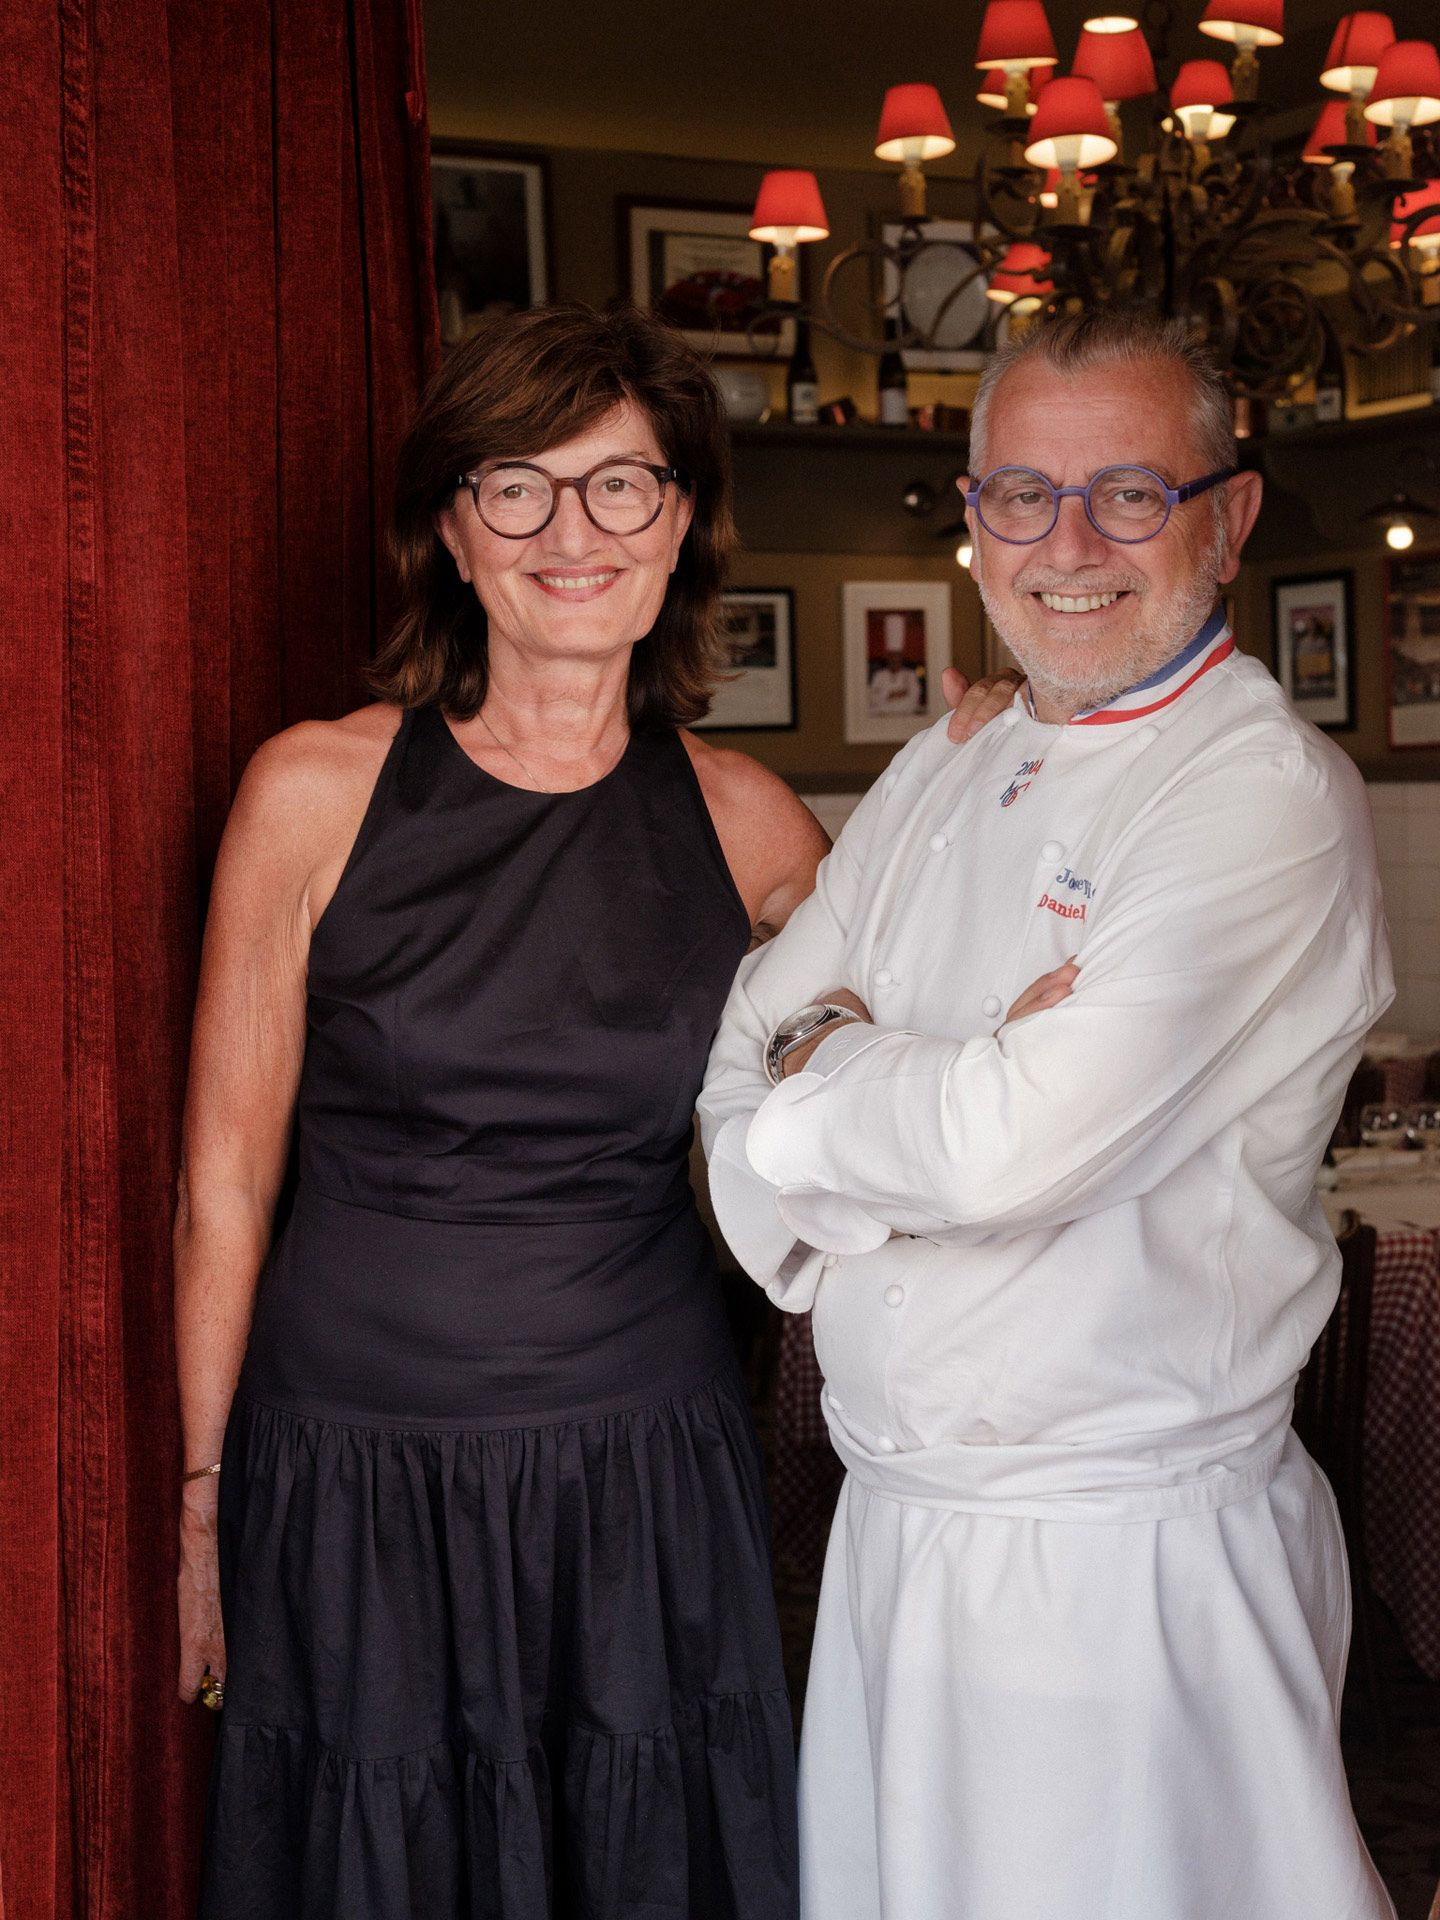 couple of owner of restaurant Daniel and Denise by Alexi Hobbs in Auvergne for Reflets de France